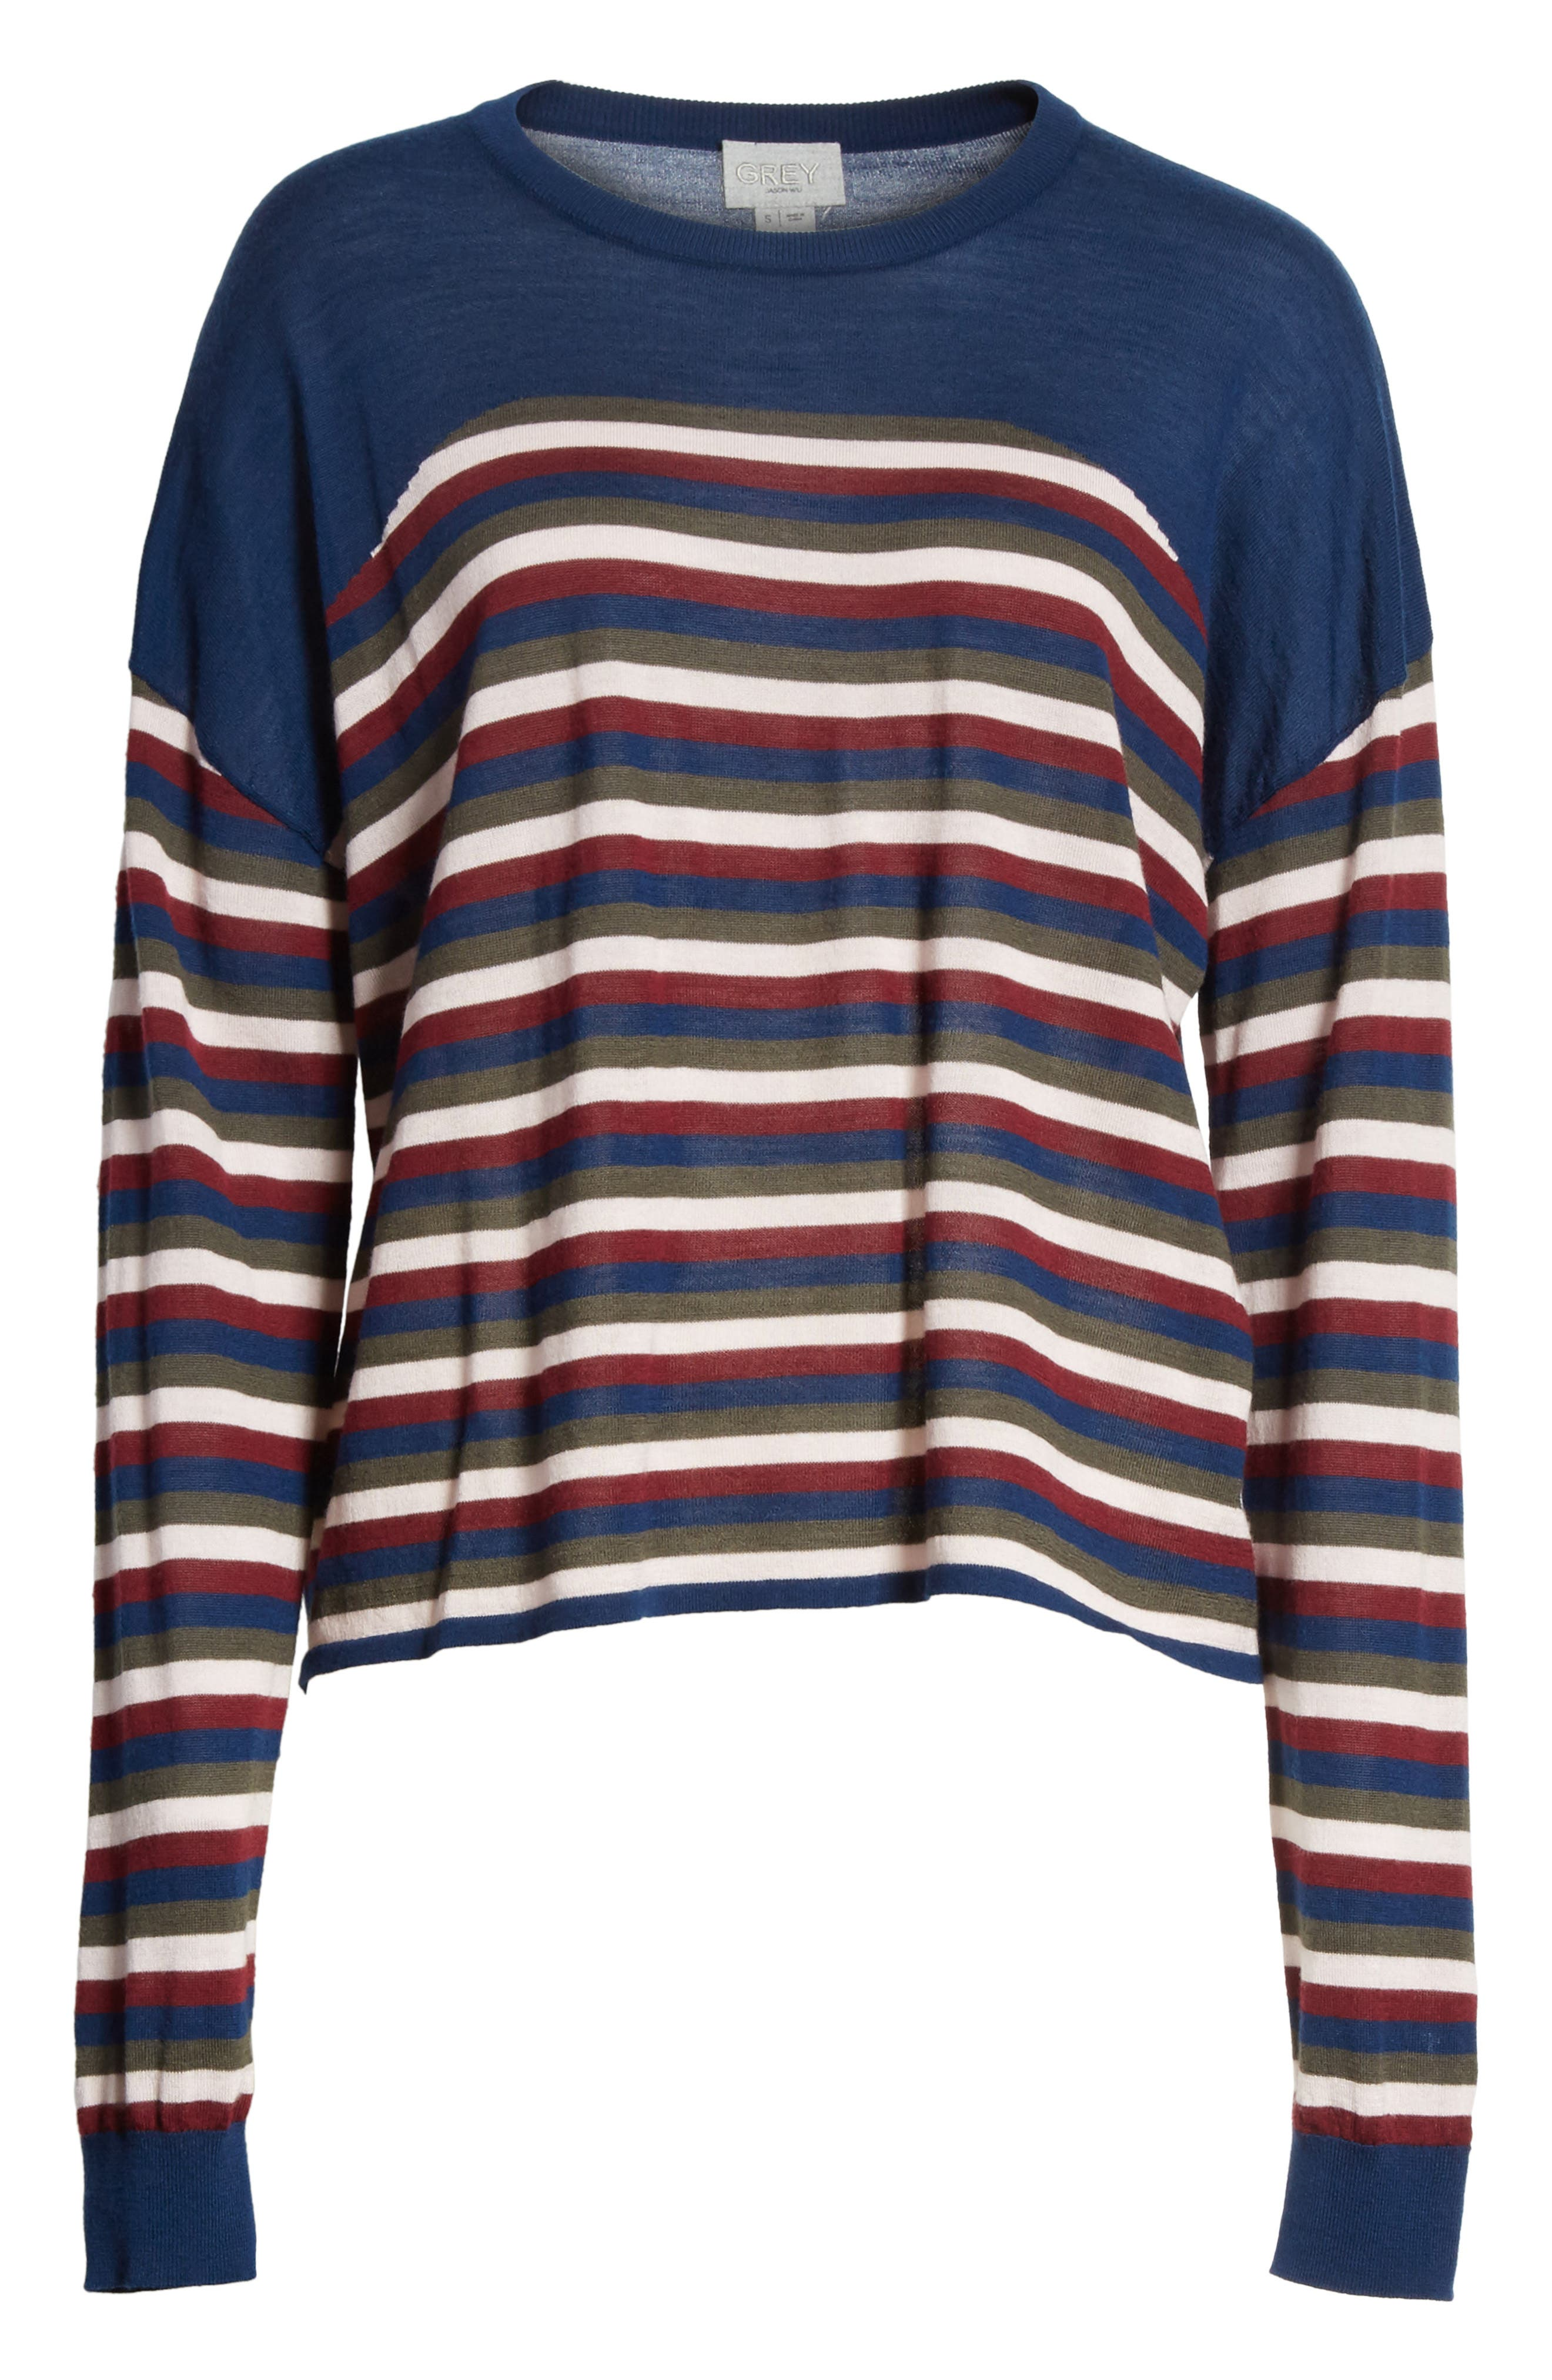 GREY Jason Wu Stripe Knit Pullover,                             Alternate thumbnail 6, color,                             404